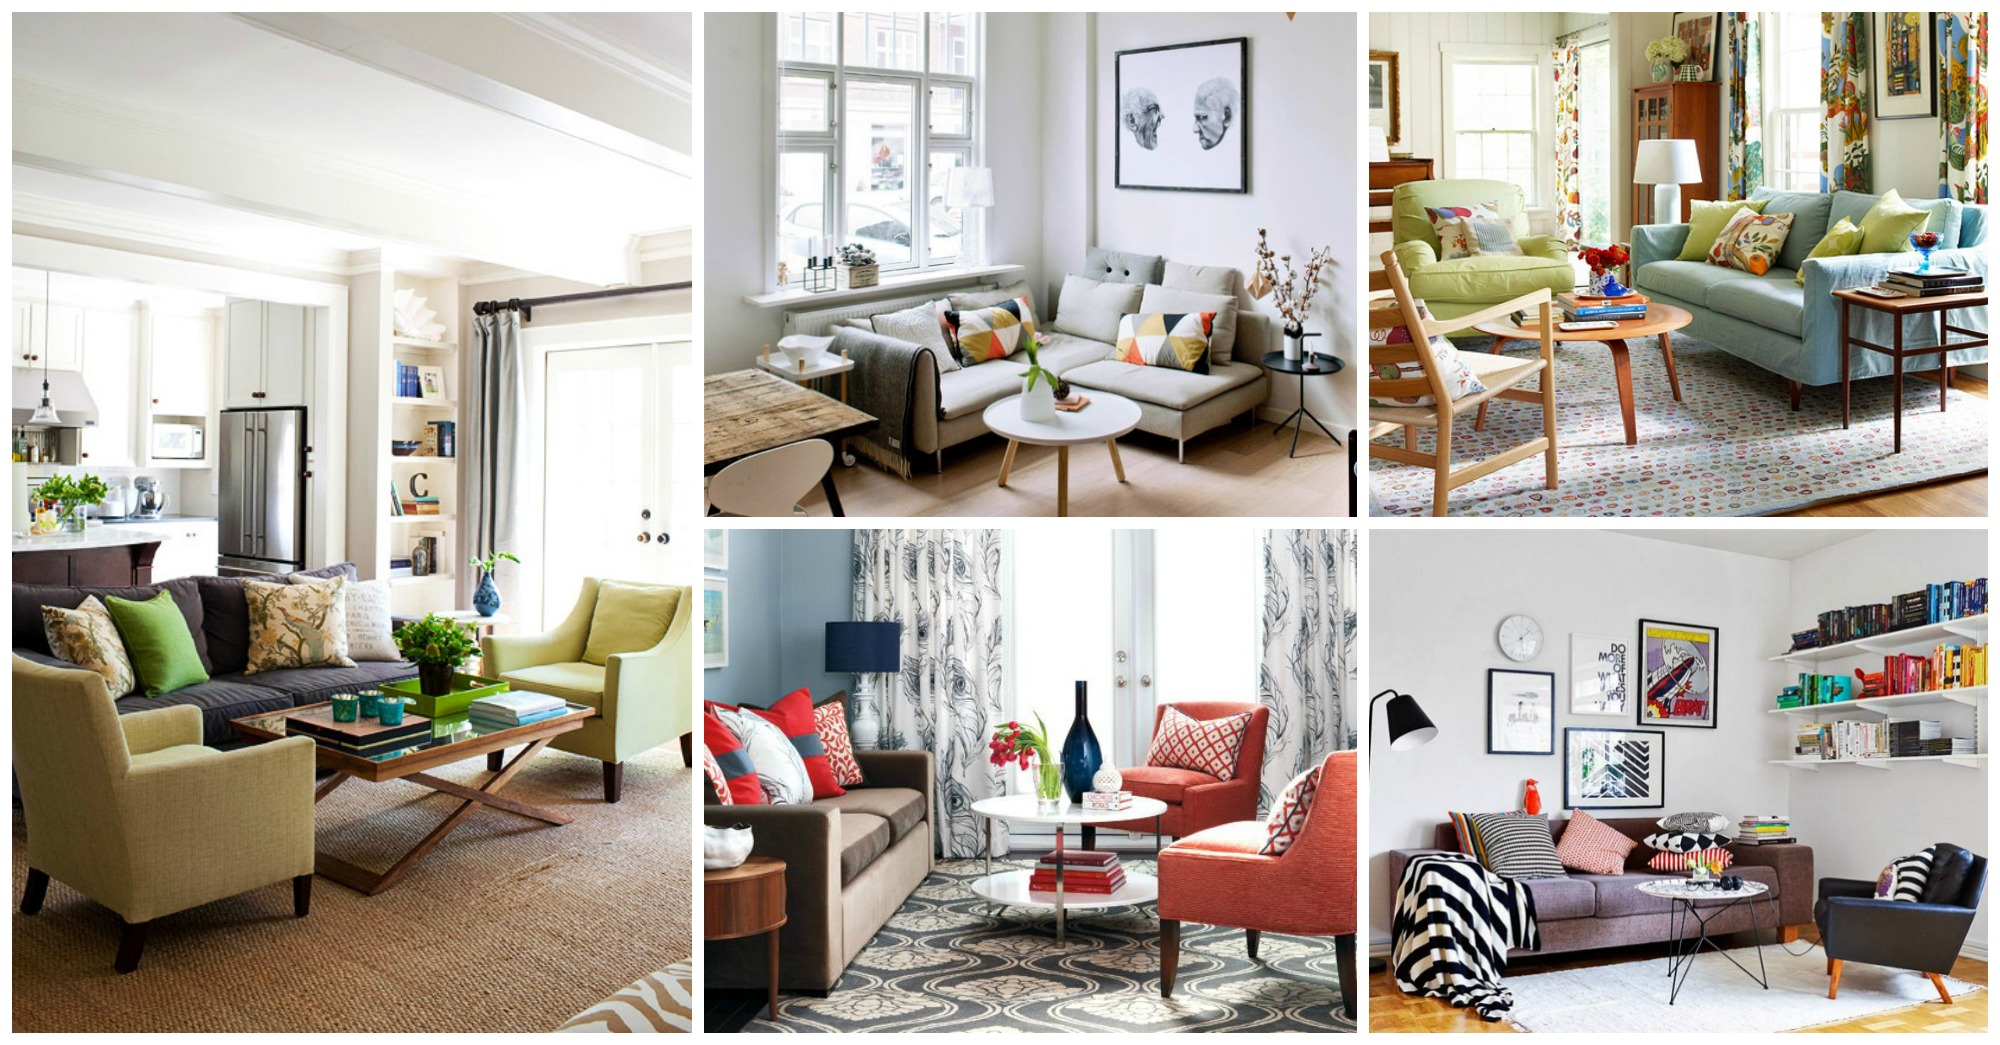 15 Small Living Rooms to Make the Most of Your Space